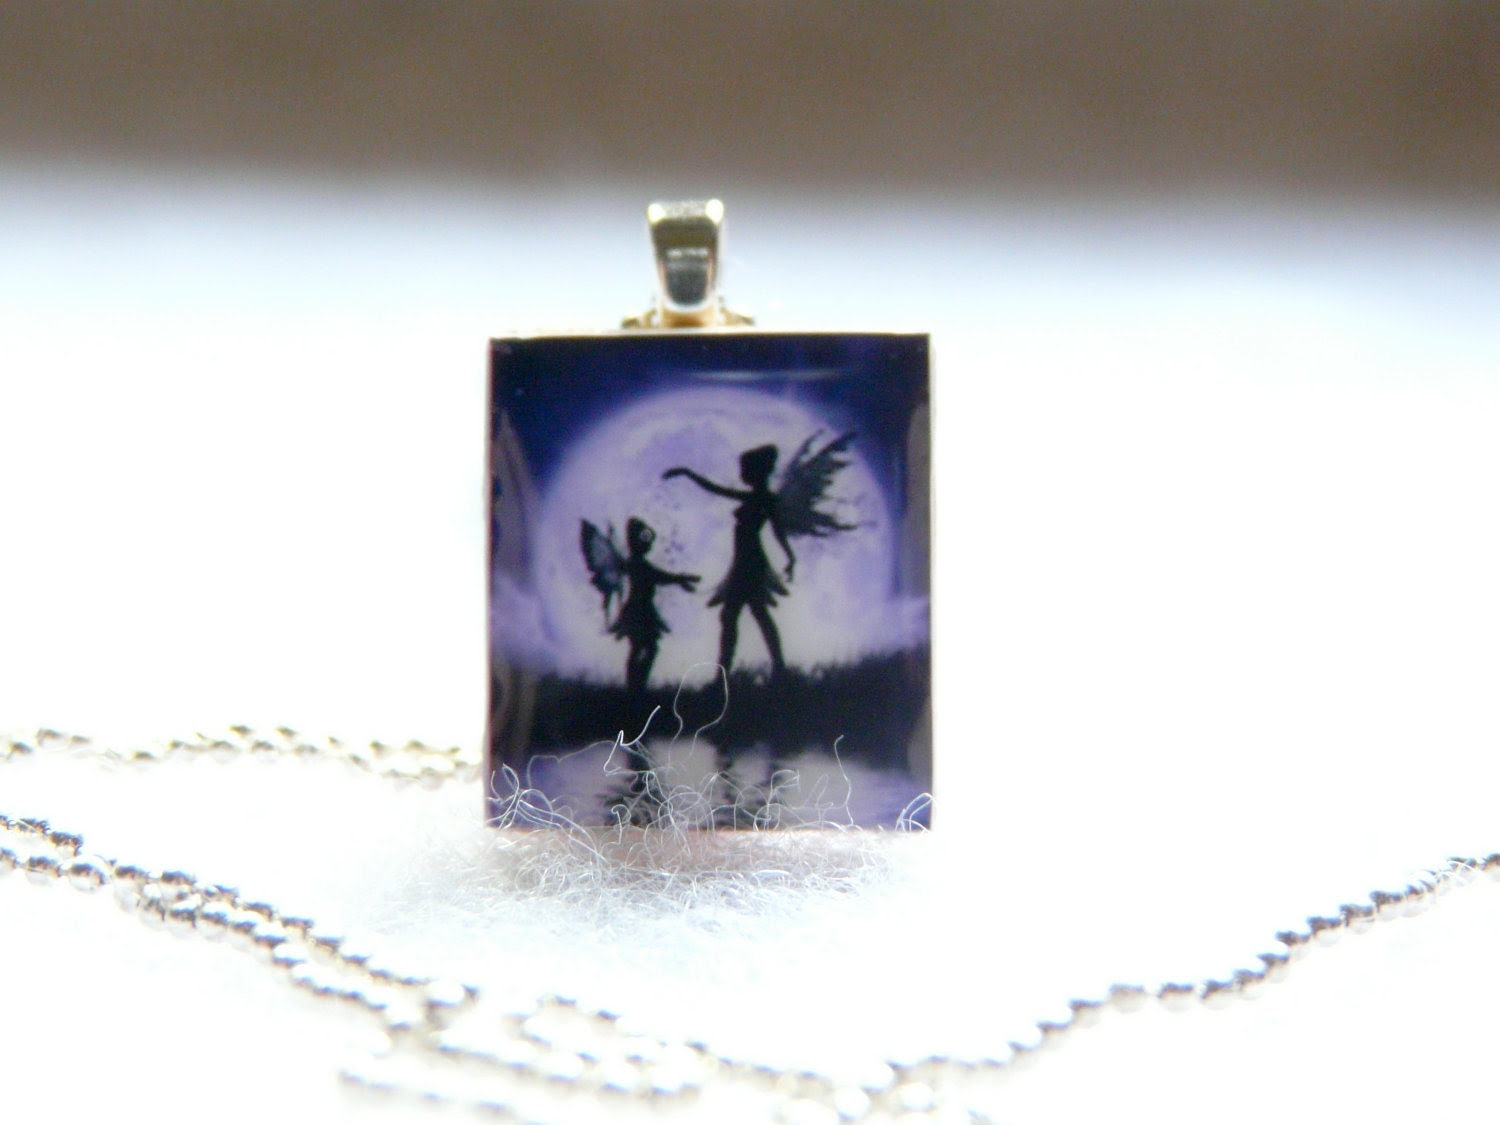 Purple Fairies Scrabble Tile Pendant With Silver Ball Chain Necklace - designsbygabby